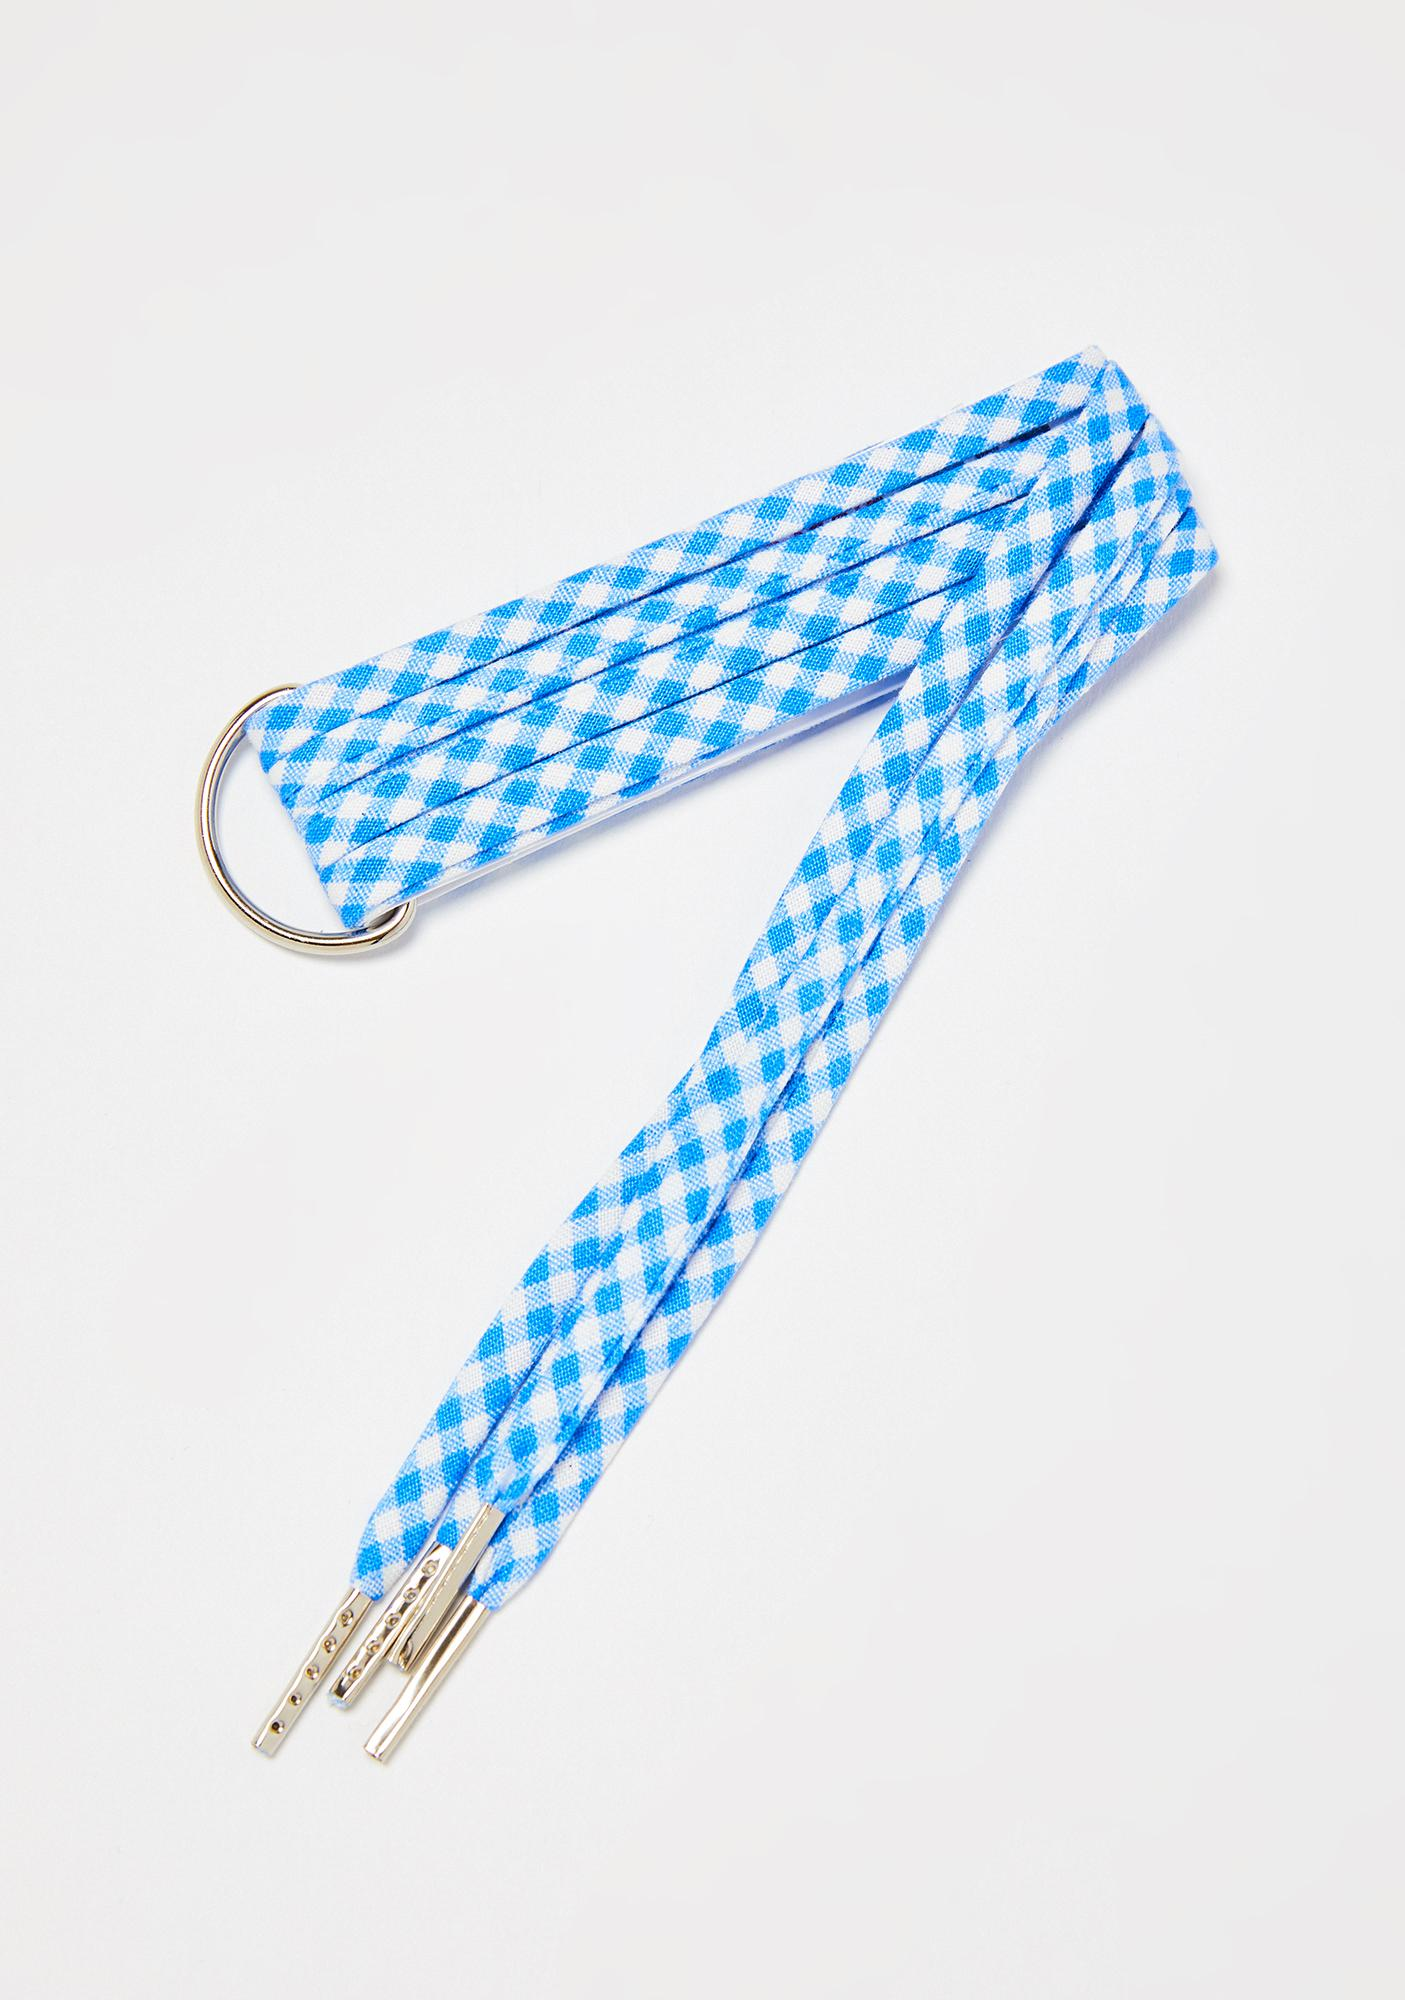 Cute Laces Dorothy Blue Checkered Shoelaces